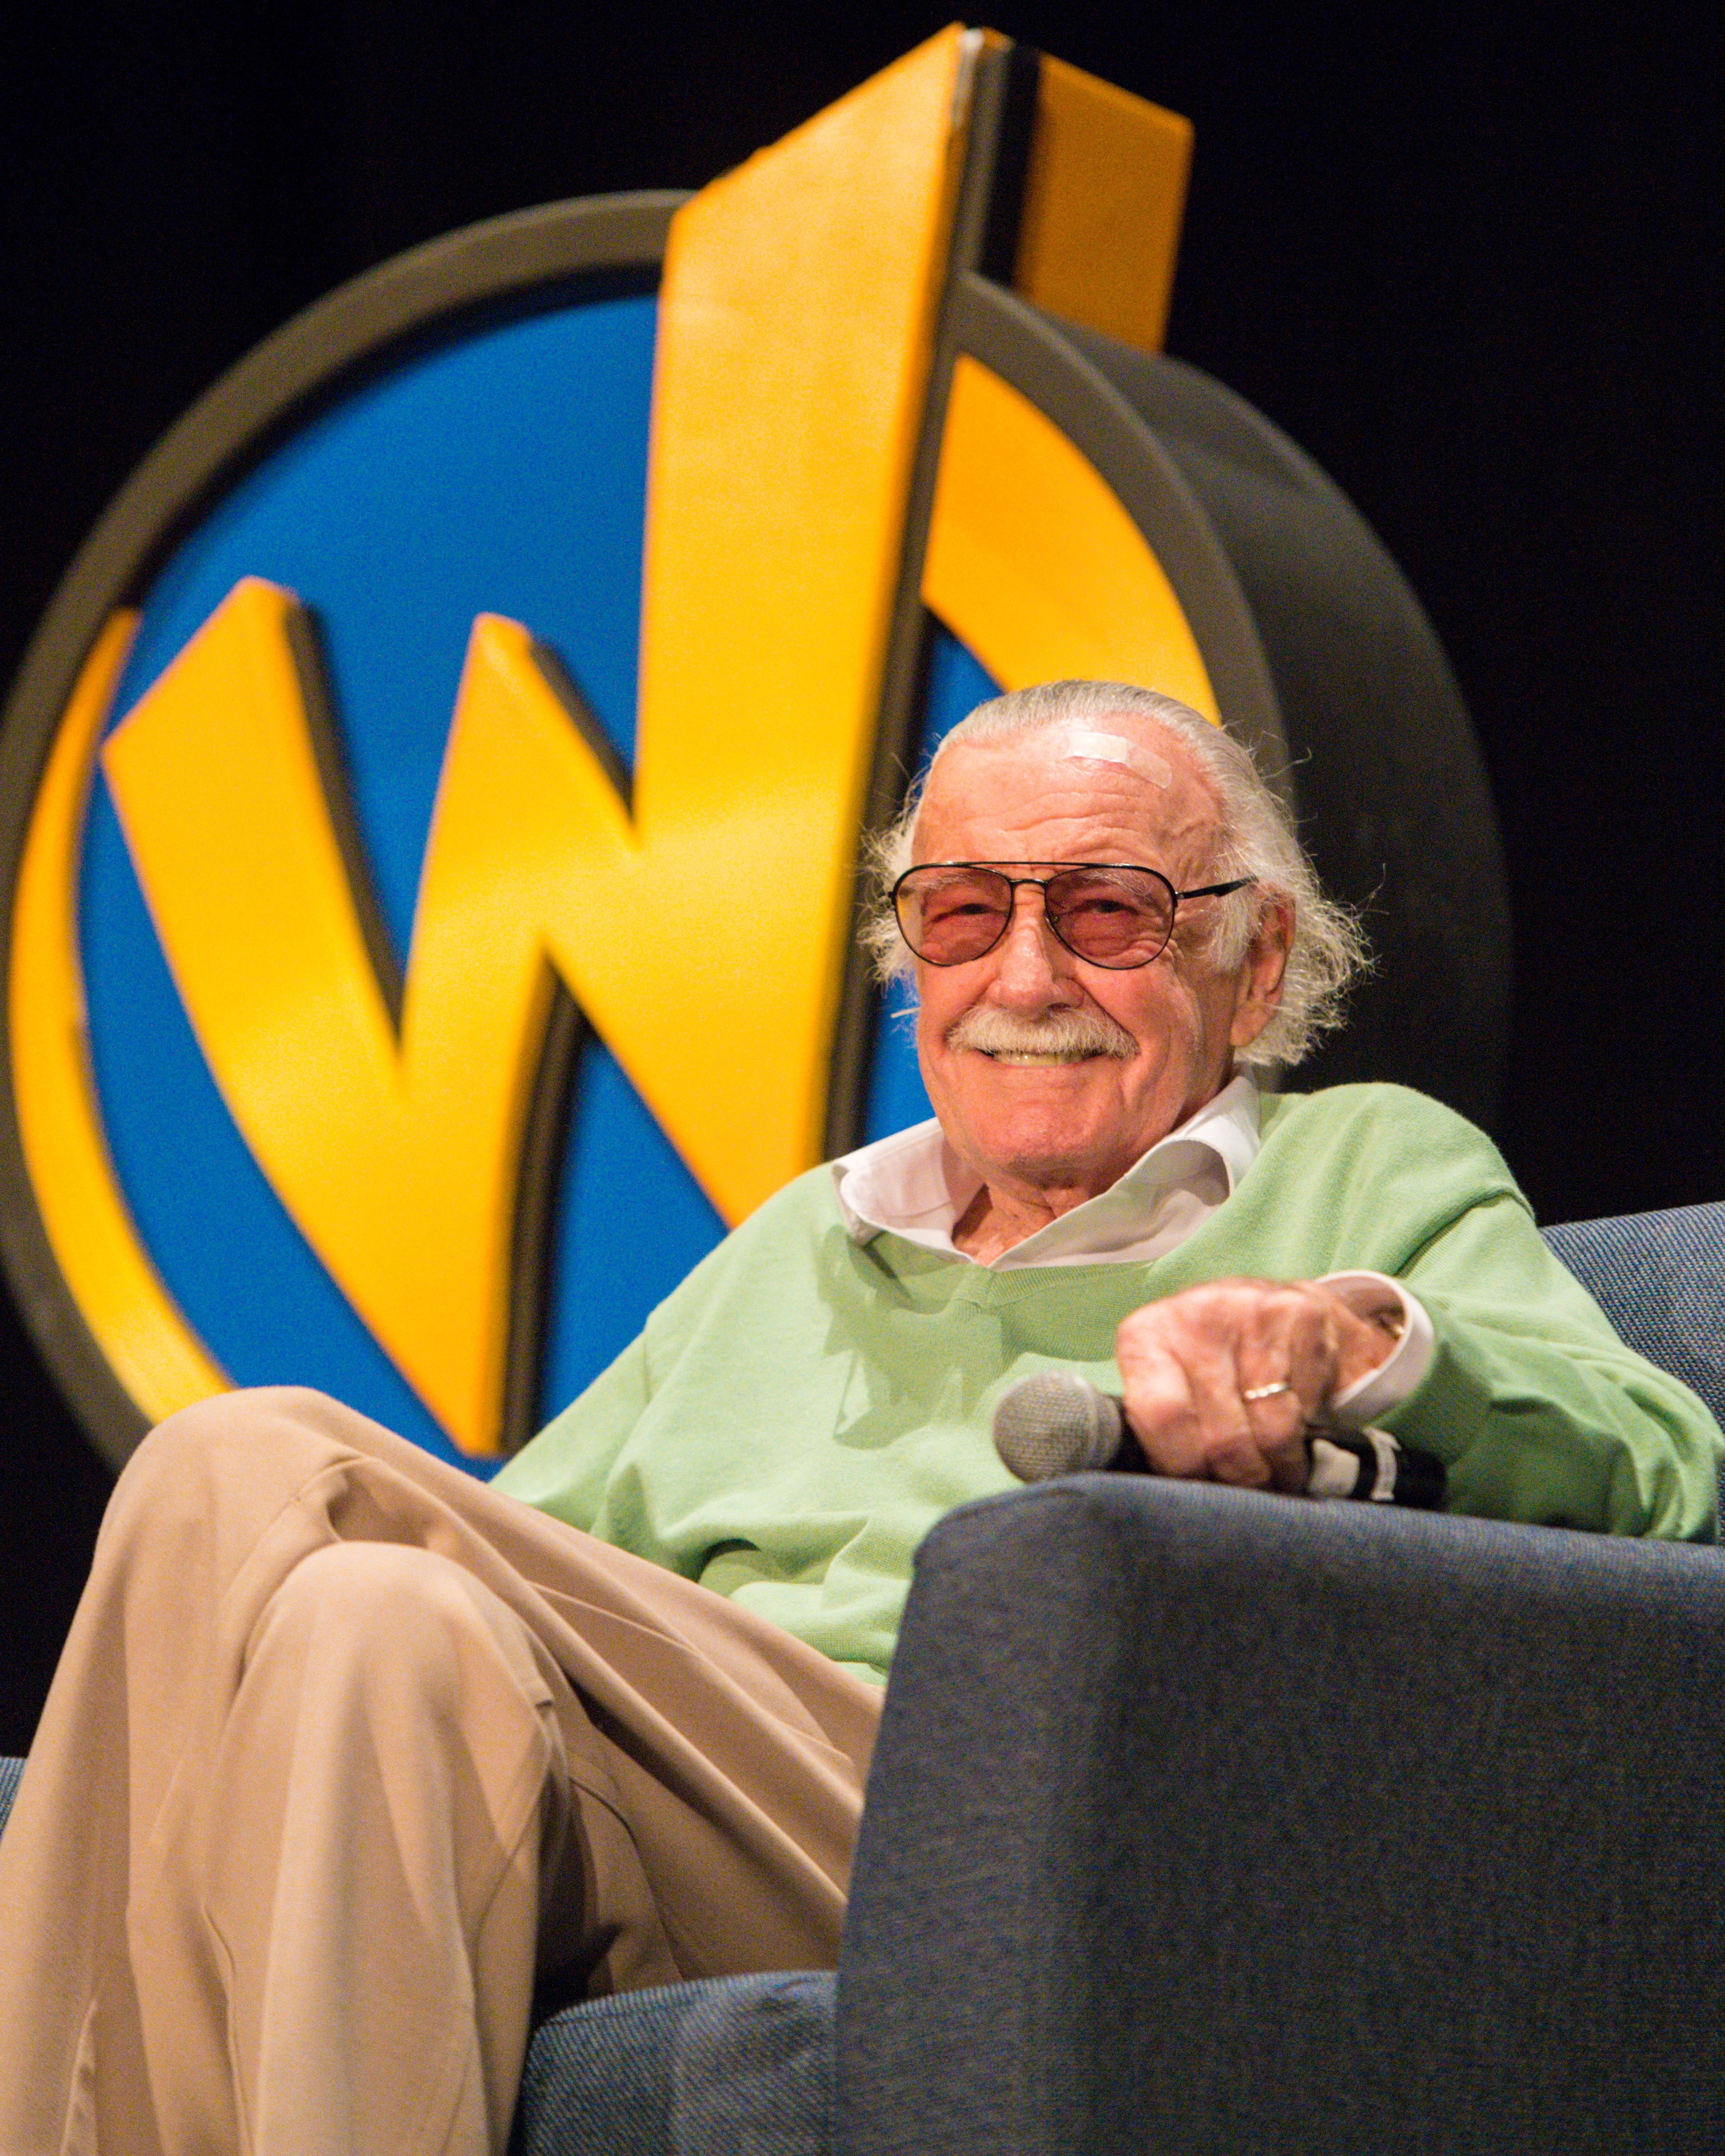 Stan Lee at the Wizard World Comic Con at Ernest N. Morial Convention Center on January 6, 2018 in New Orleans, Louisiana. | Source: Getty Images